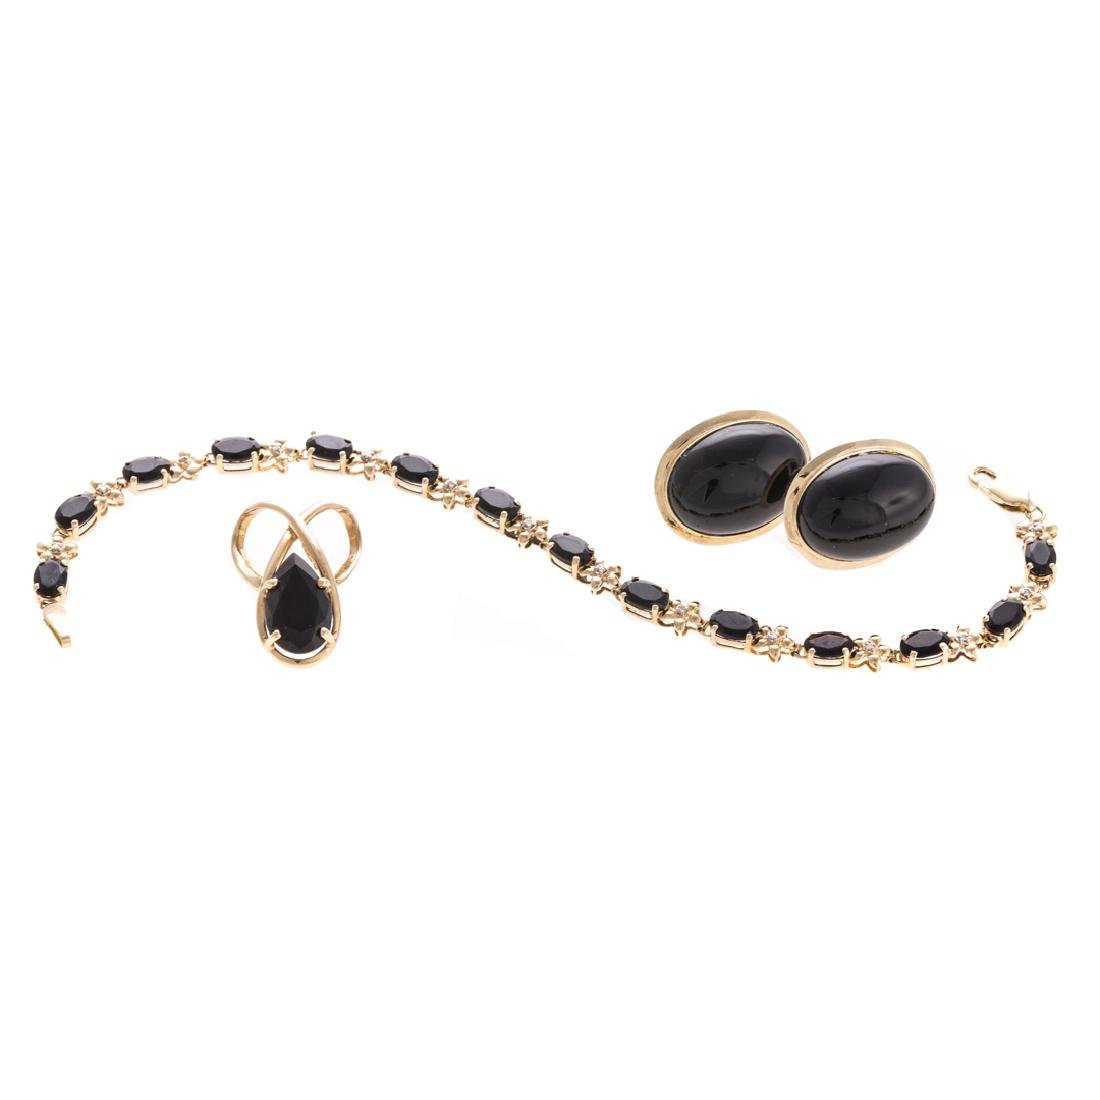 A Suite of Lady's Black Onyx Jewelry in 14K Gold